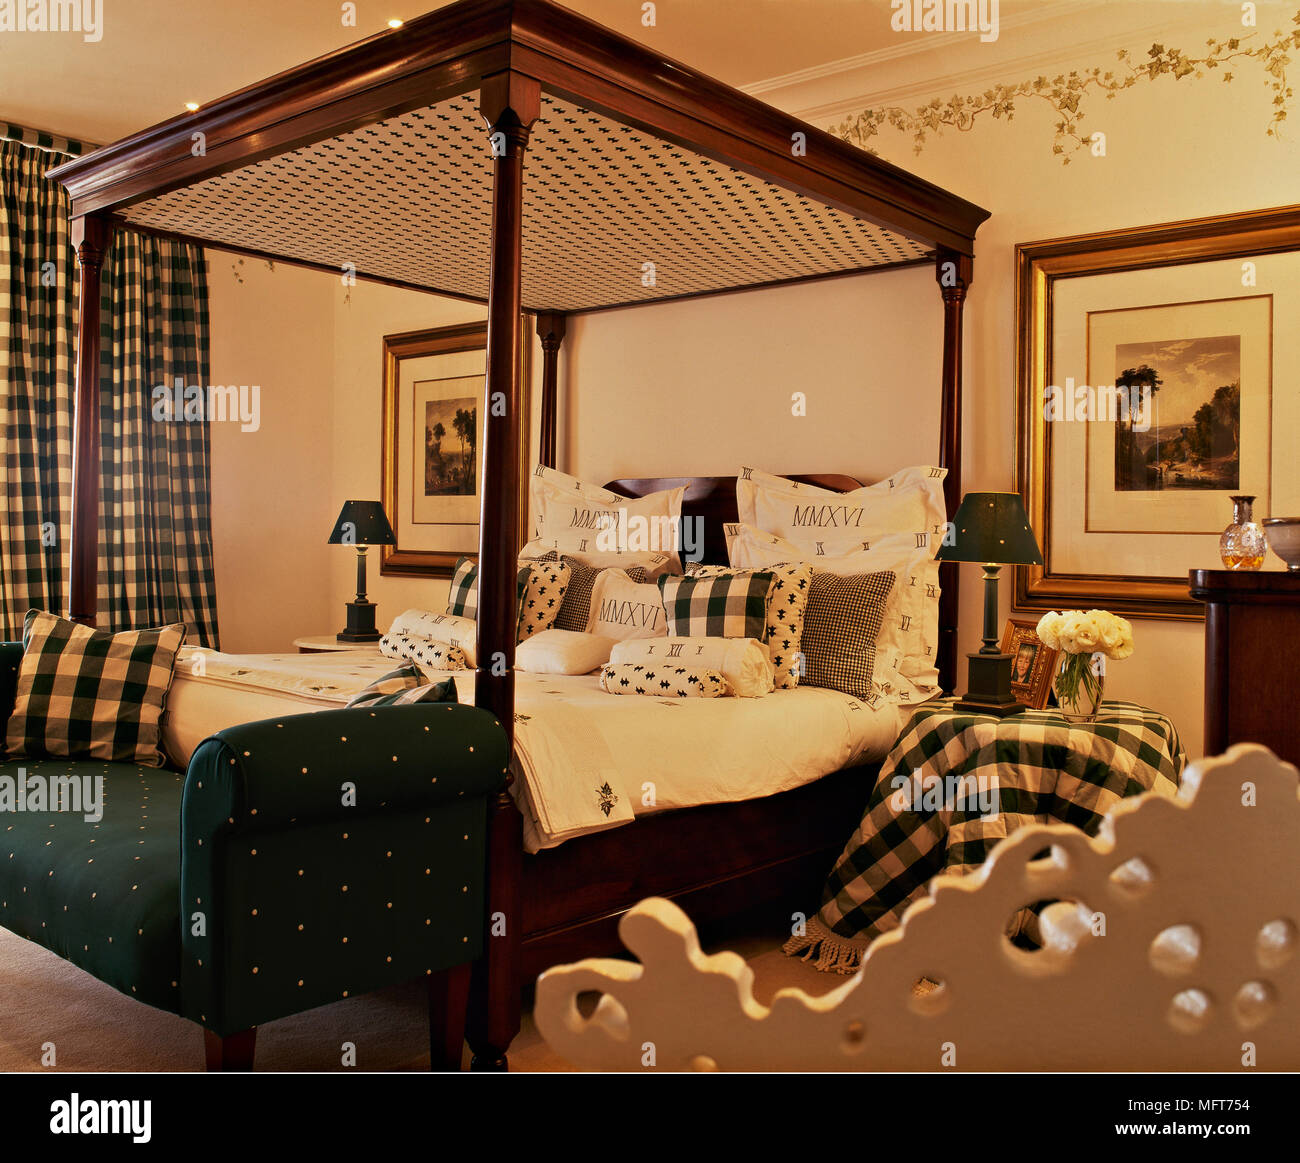 https www alamy com a traditional yellow bedroom wood four poster bed check curtains painted frieze image181856000 html